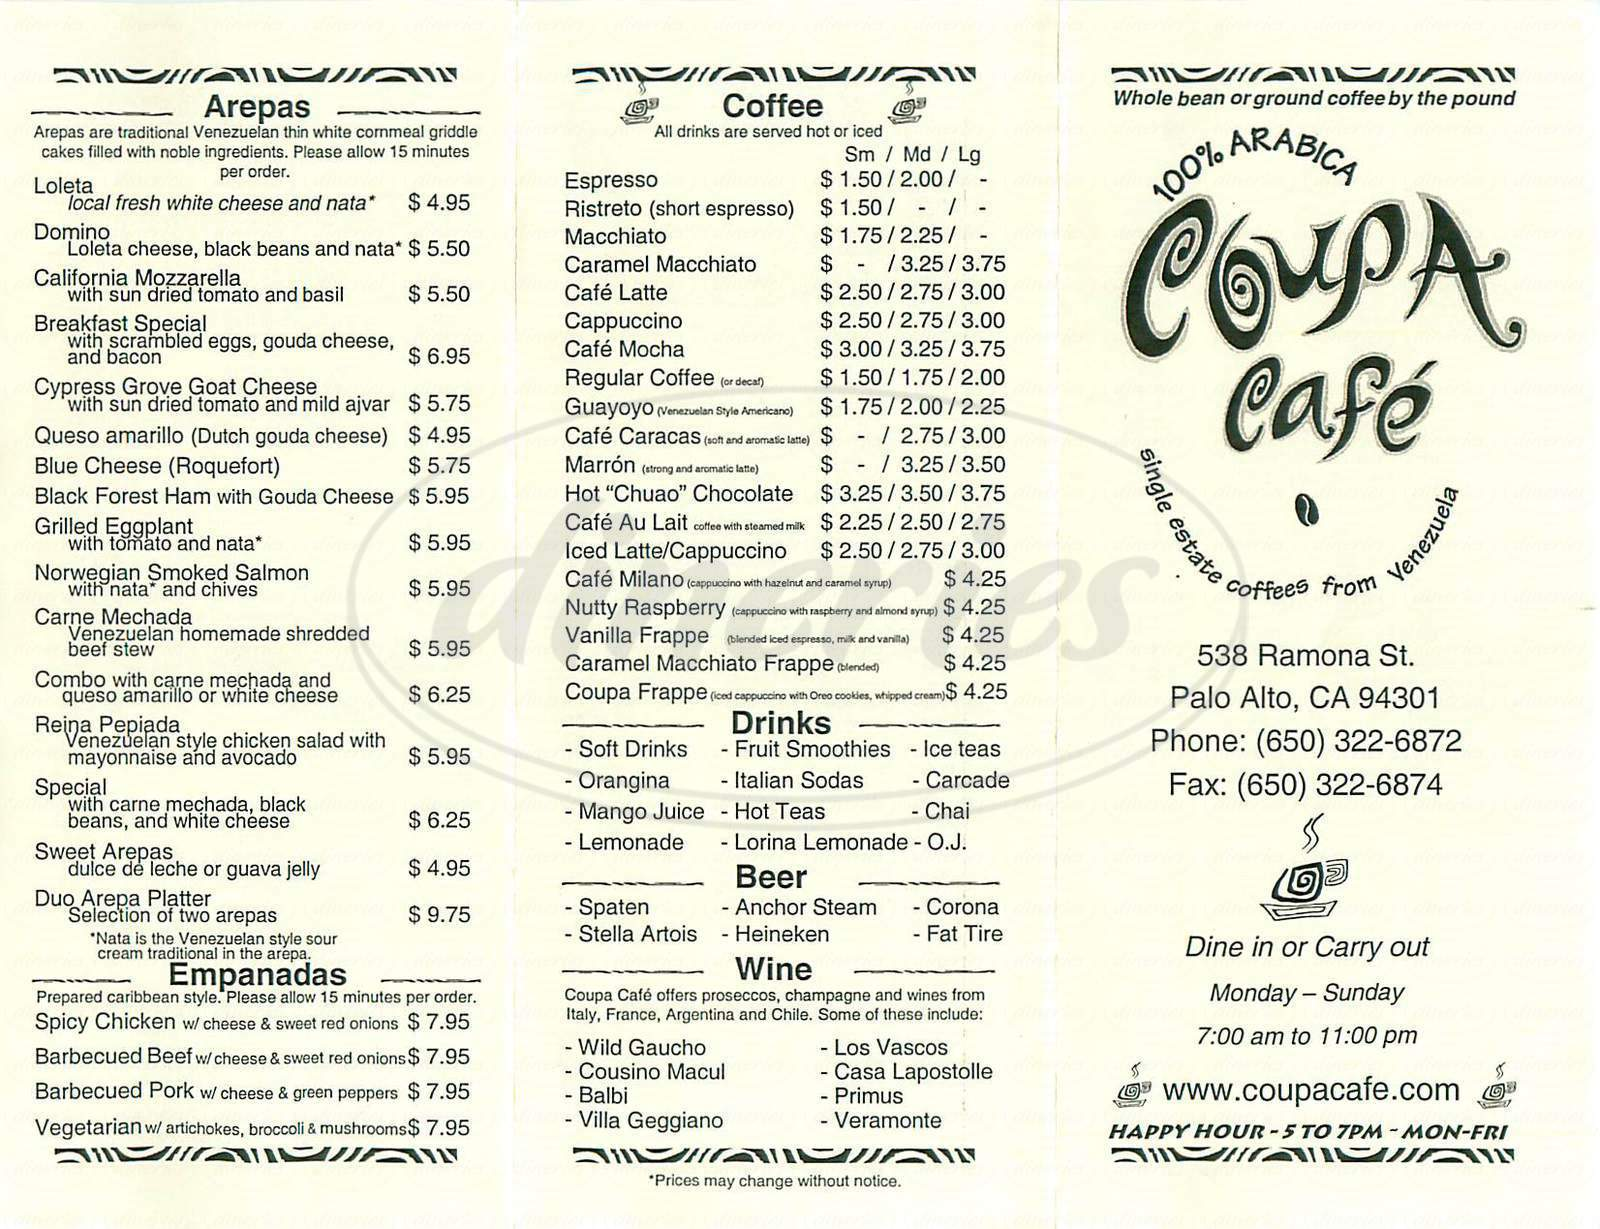 menu for Coupa Cafe